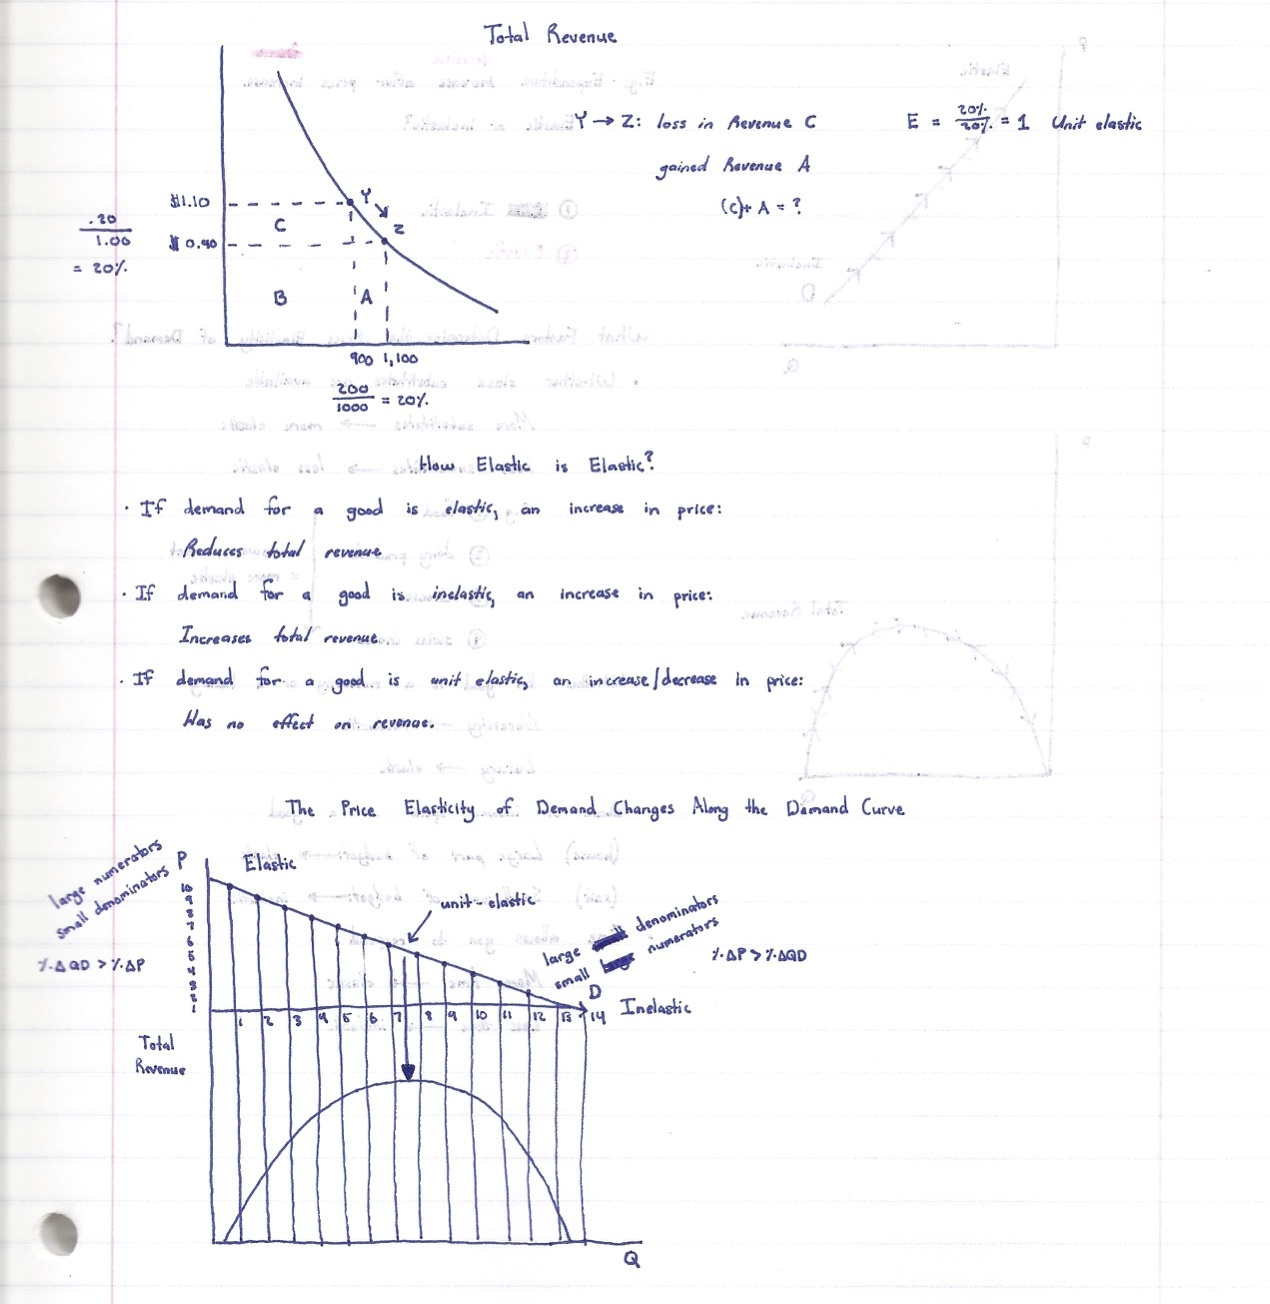 ECON 20811 - Class Notes - Week 2